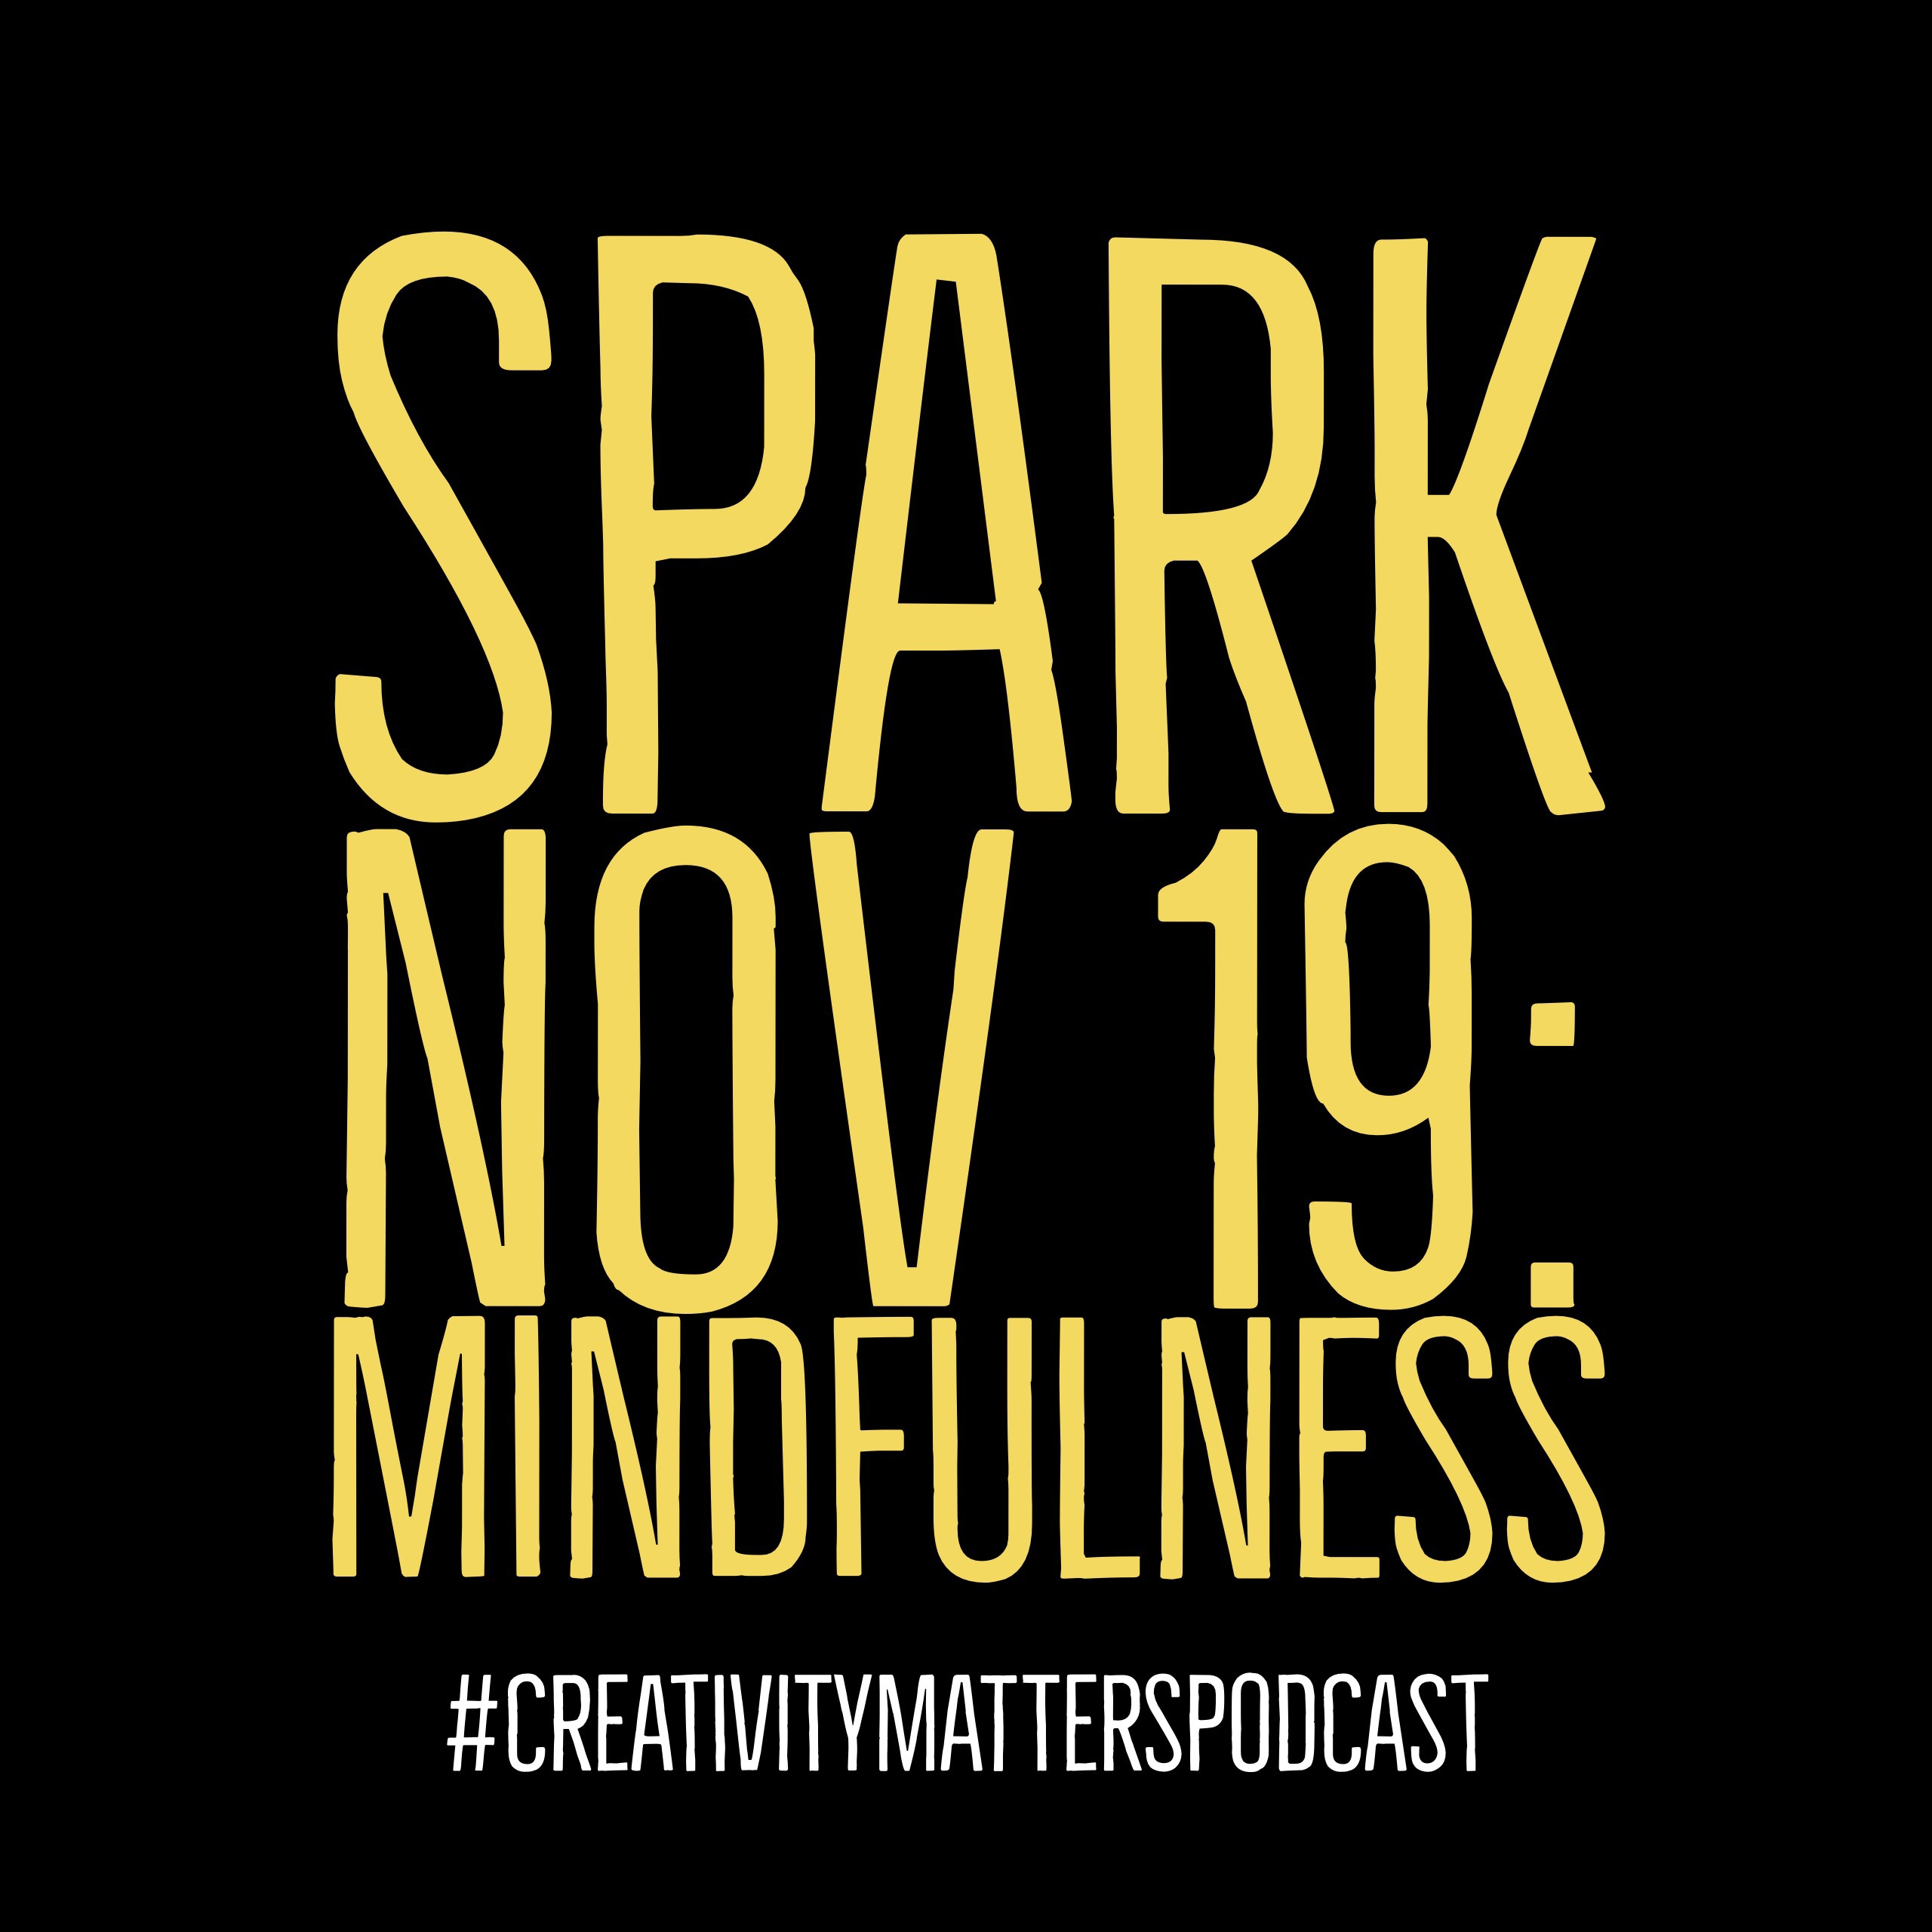 Spark Nov 19: Mindfulness